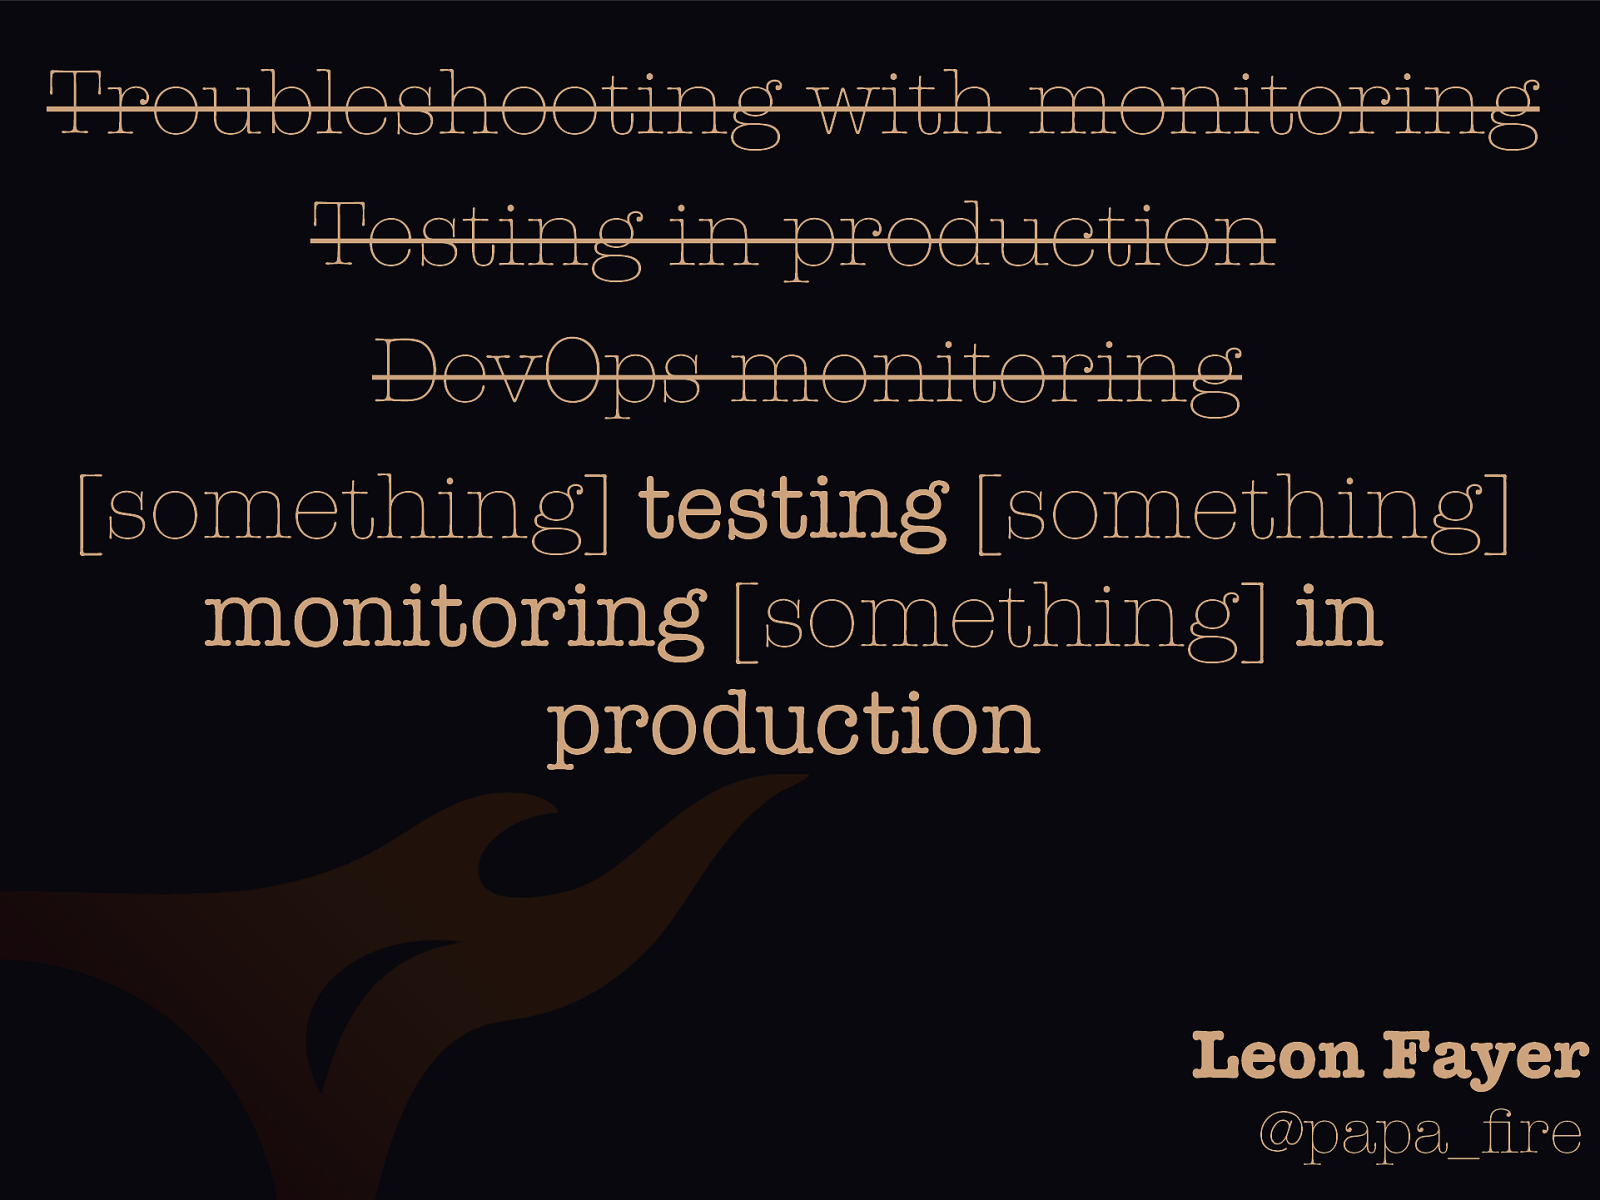 Production testing through monitoring